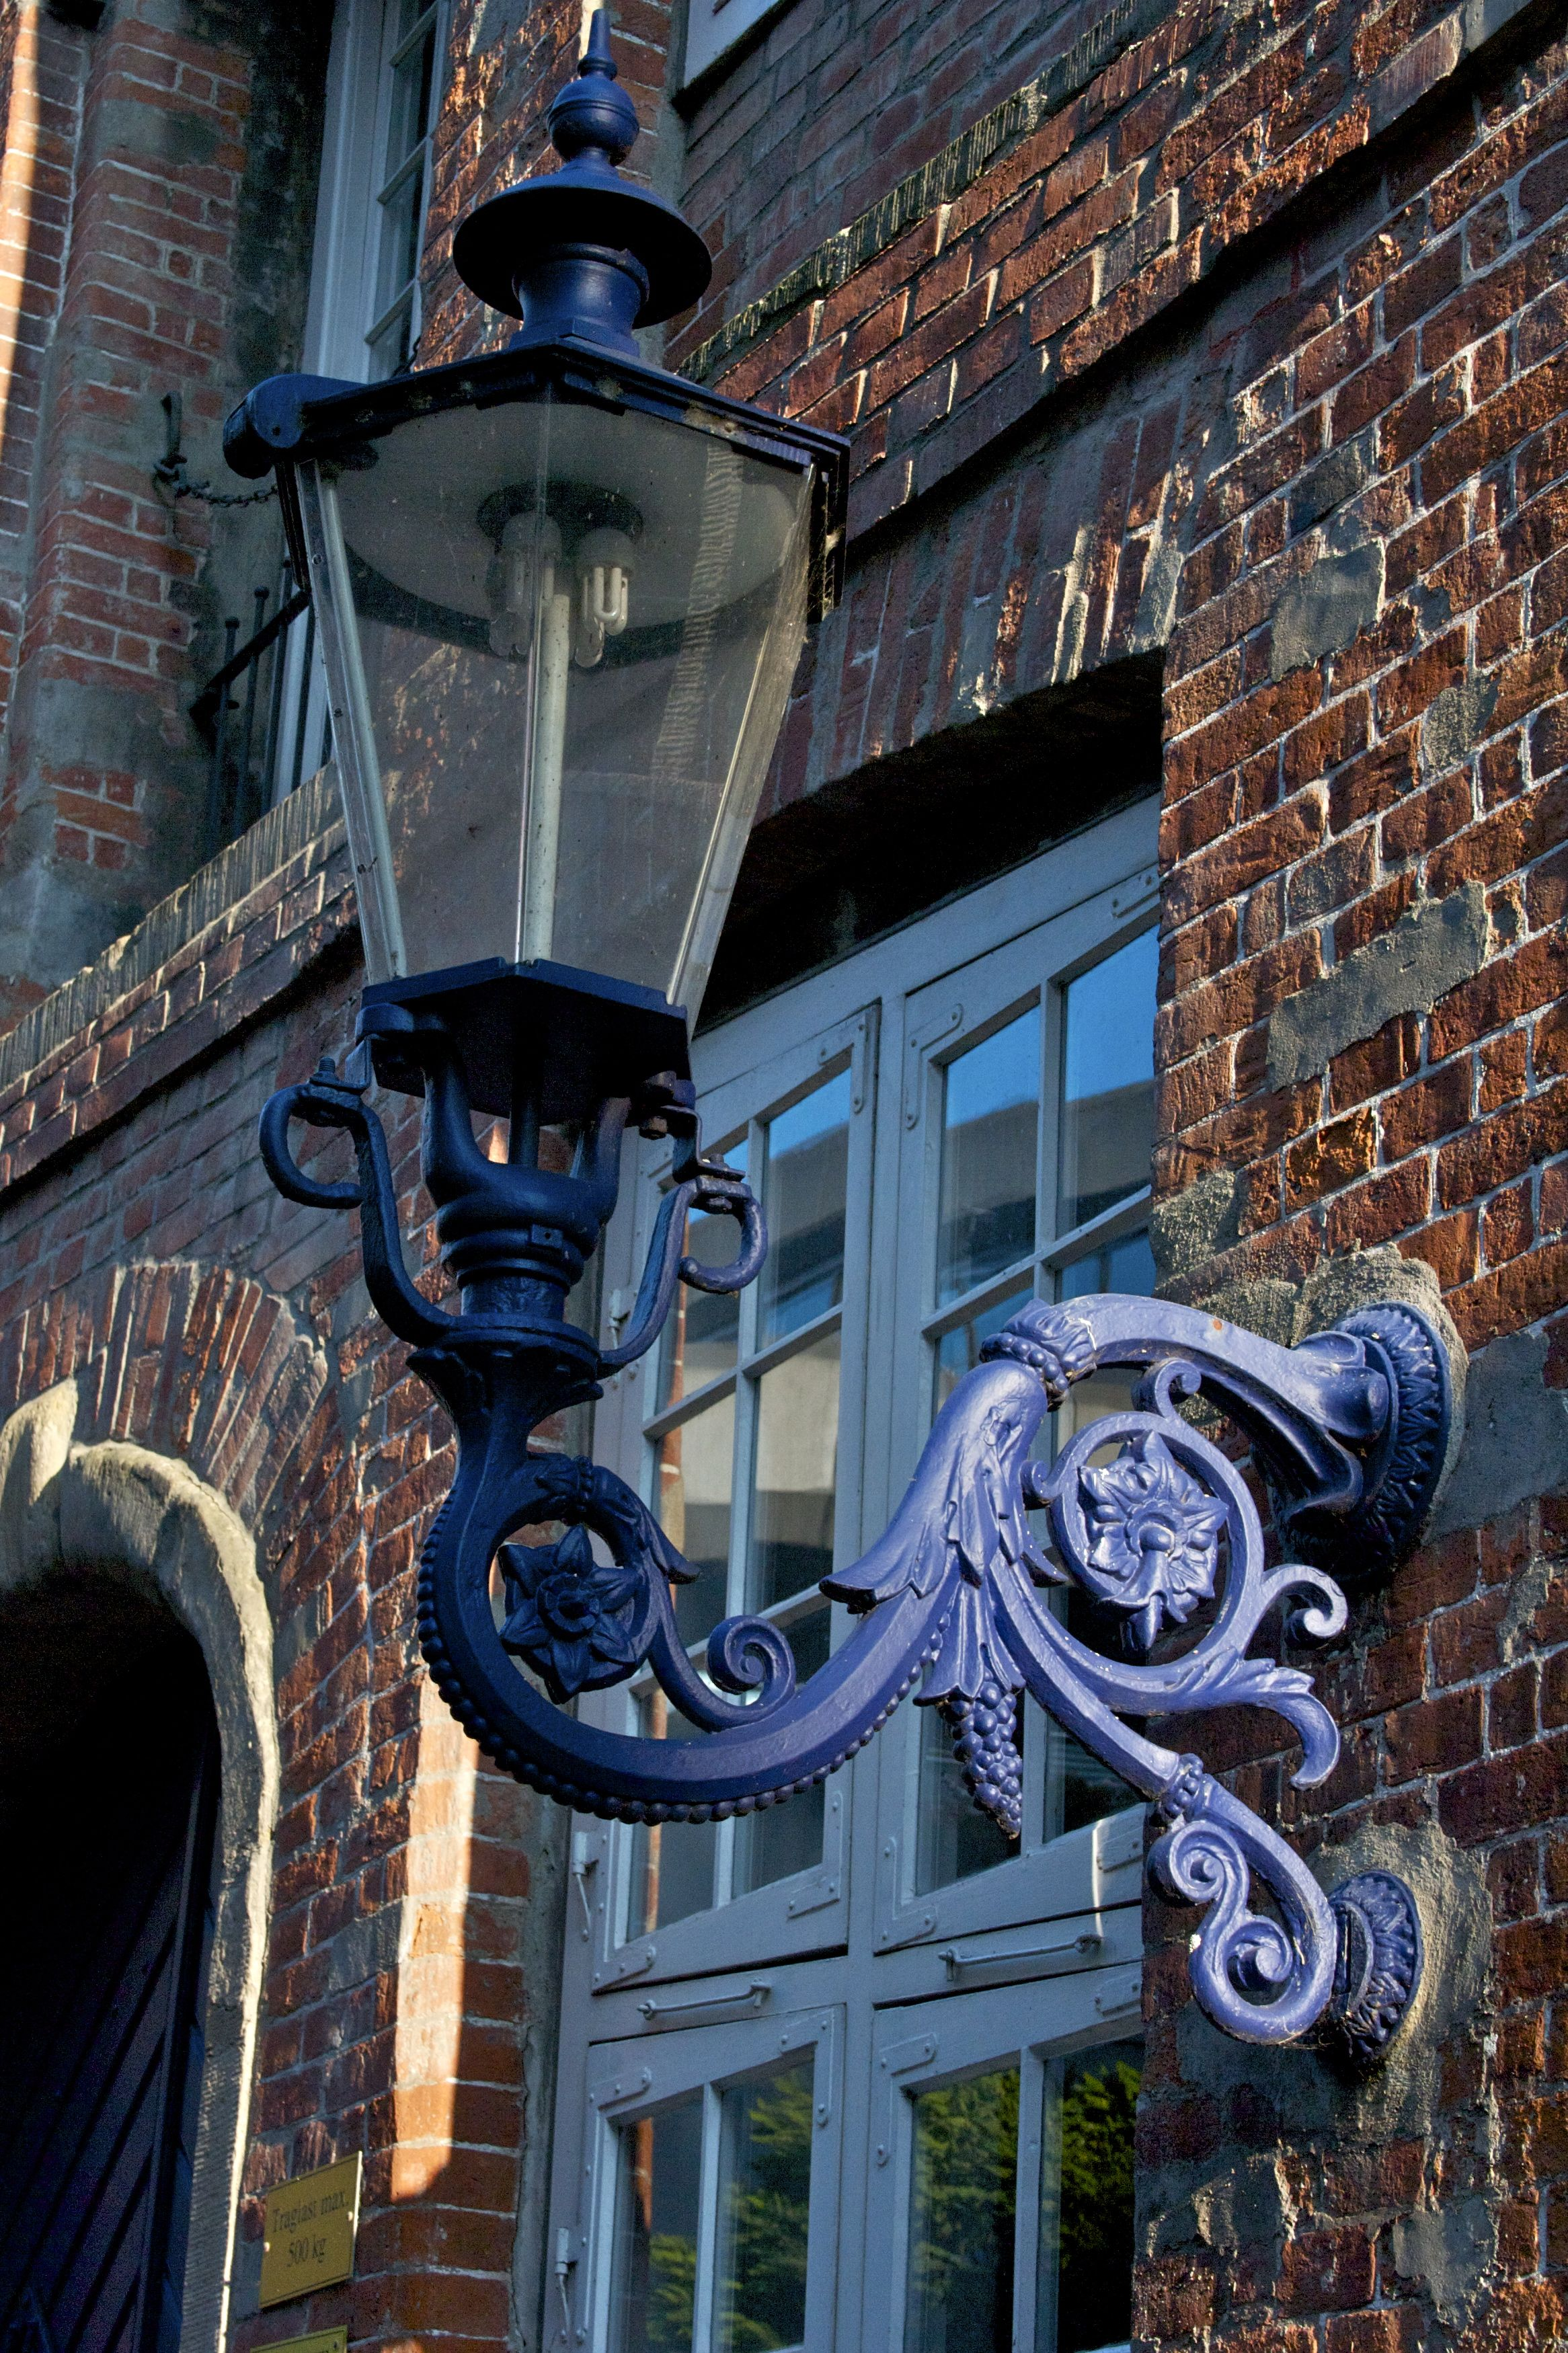 astonishing unique street lighting | old street lamp in new color | Street lamp, Old lanterns ...